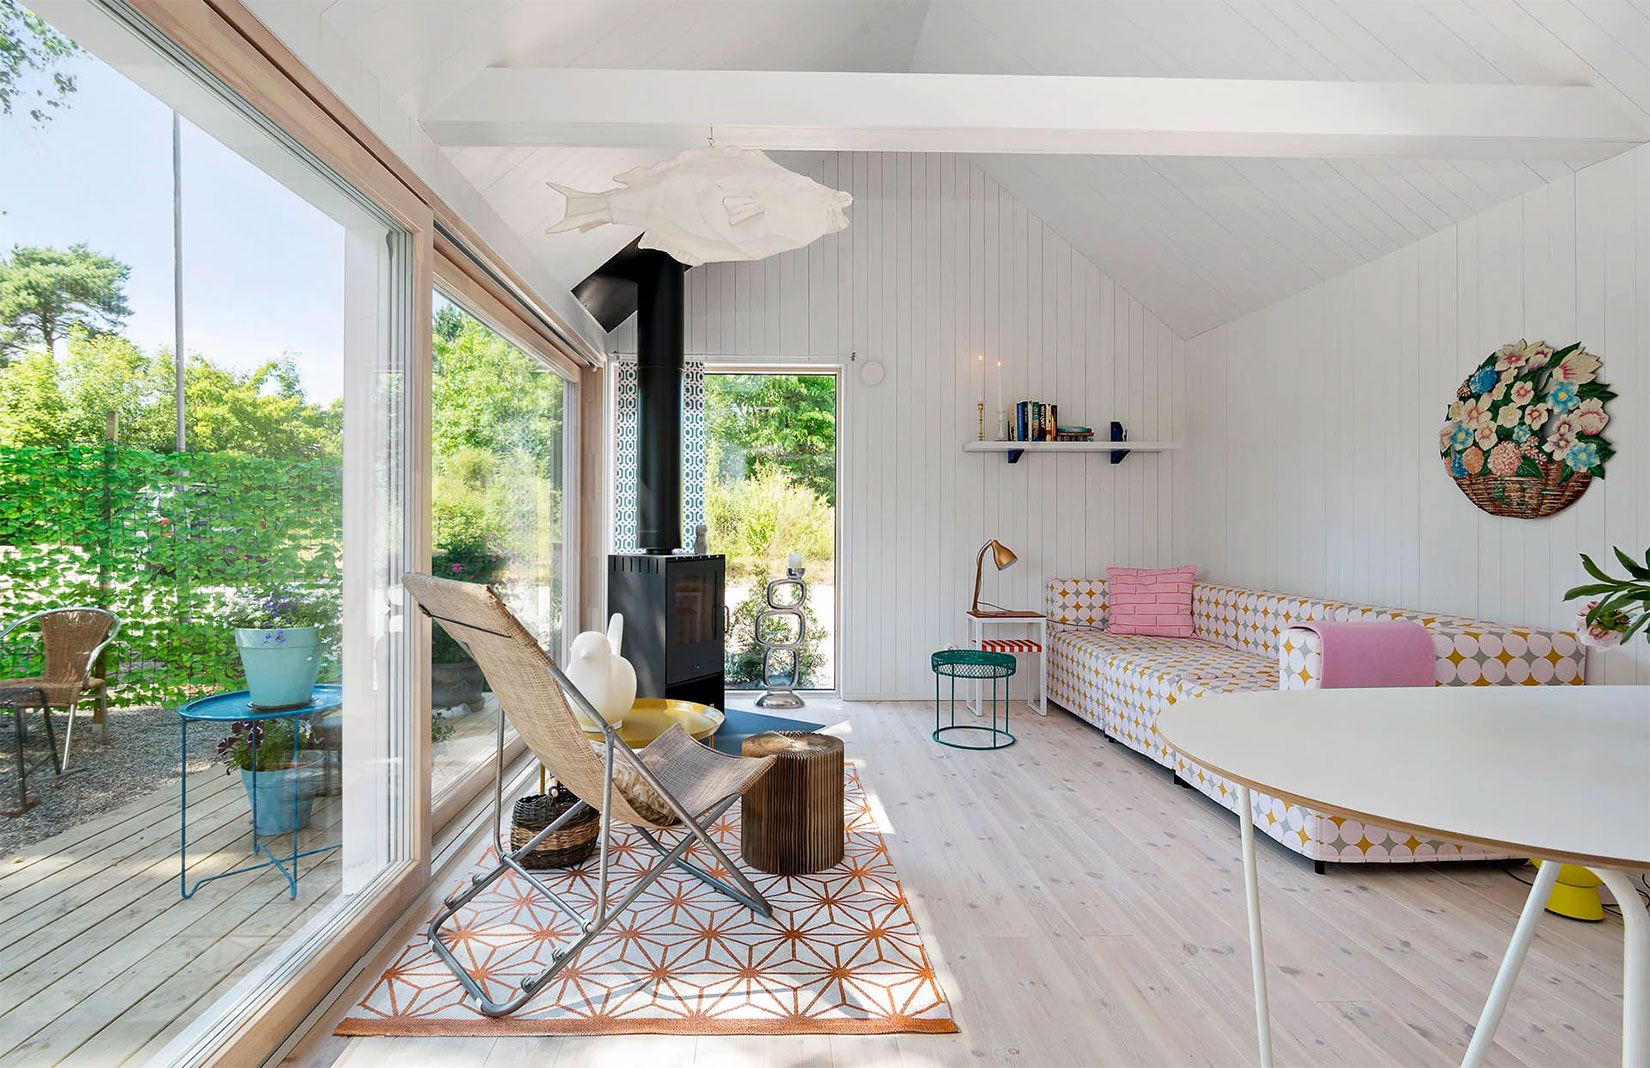 Swedish Living Room Property Of The Week A Dreamy Summer Cabin In Sweden S Smygehamn